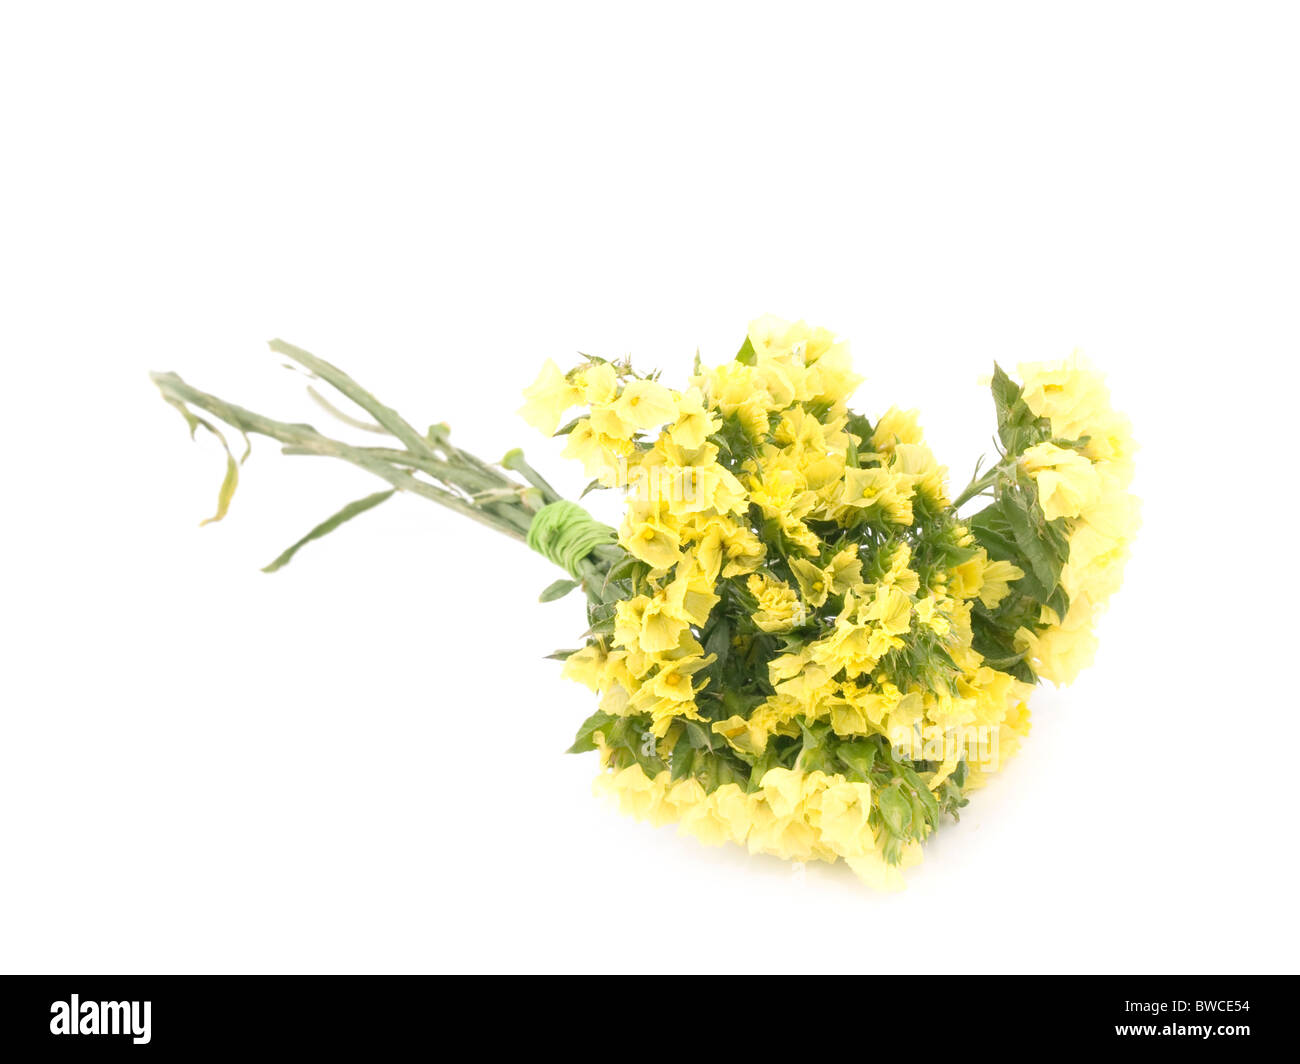 Statice flower stock photos statice flower stock images alamy small bouquet of yellow statice flowers on white background stock image mightylinksfo